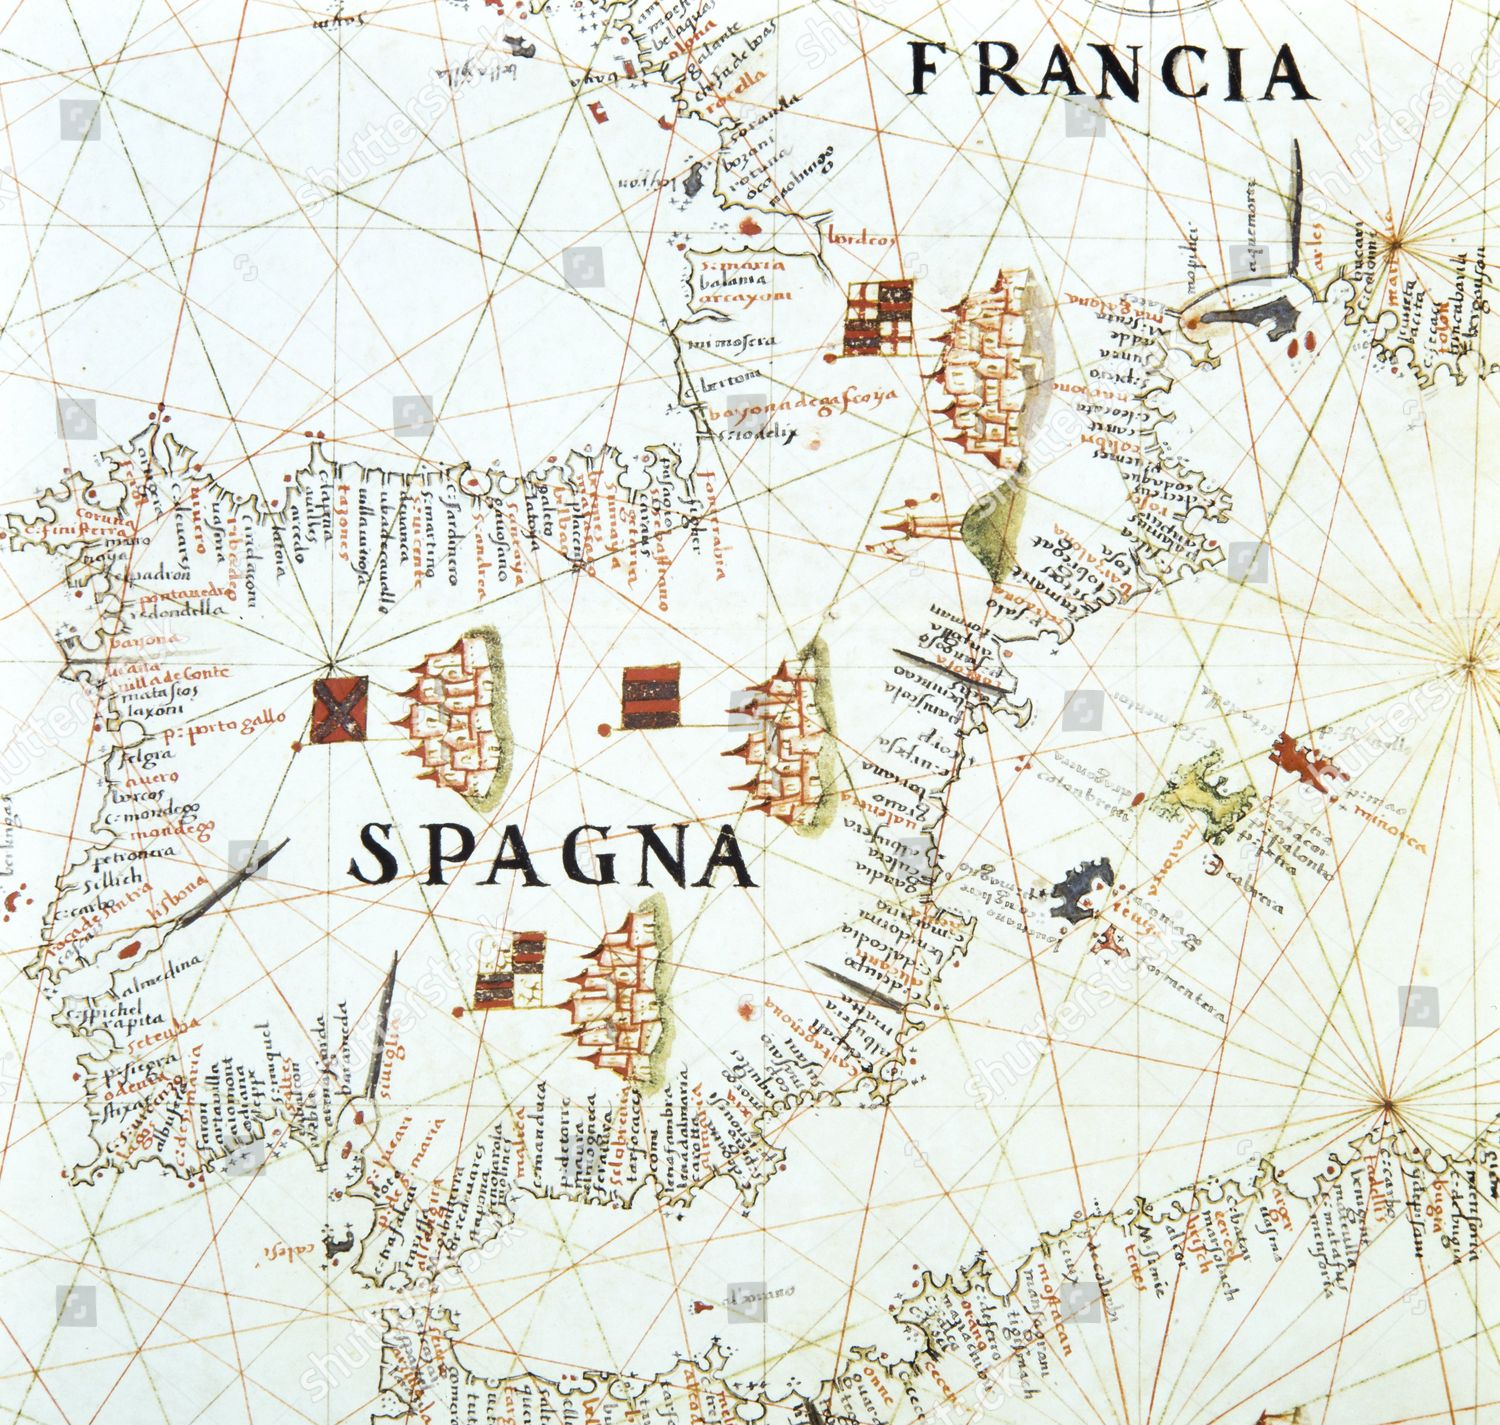 Map Of West Coast Of France.Map Spain Detail West Coast France Atlas Editorial Stock Photo